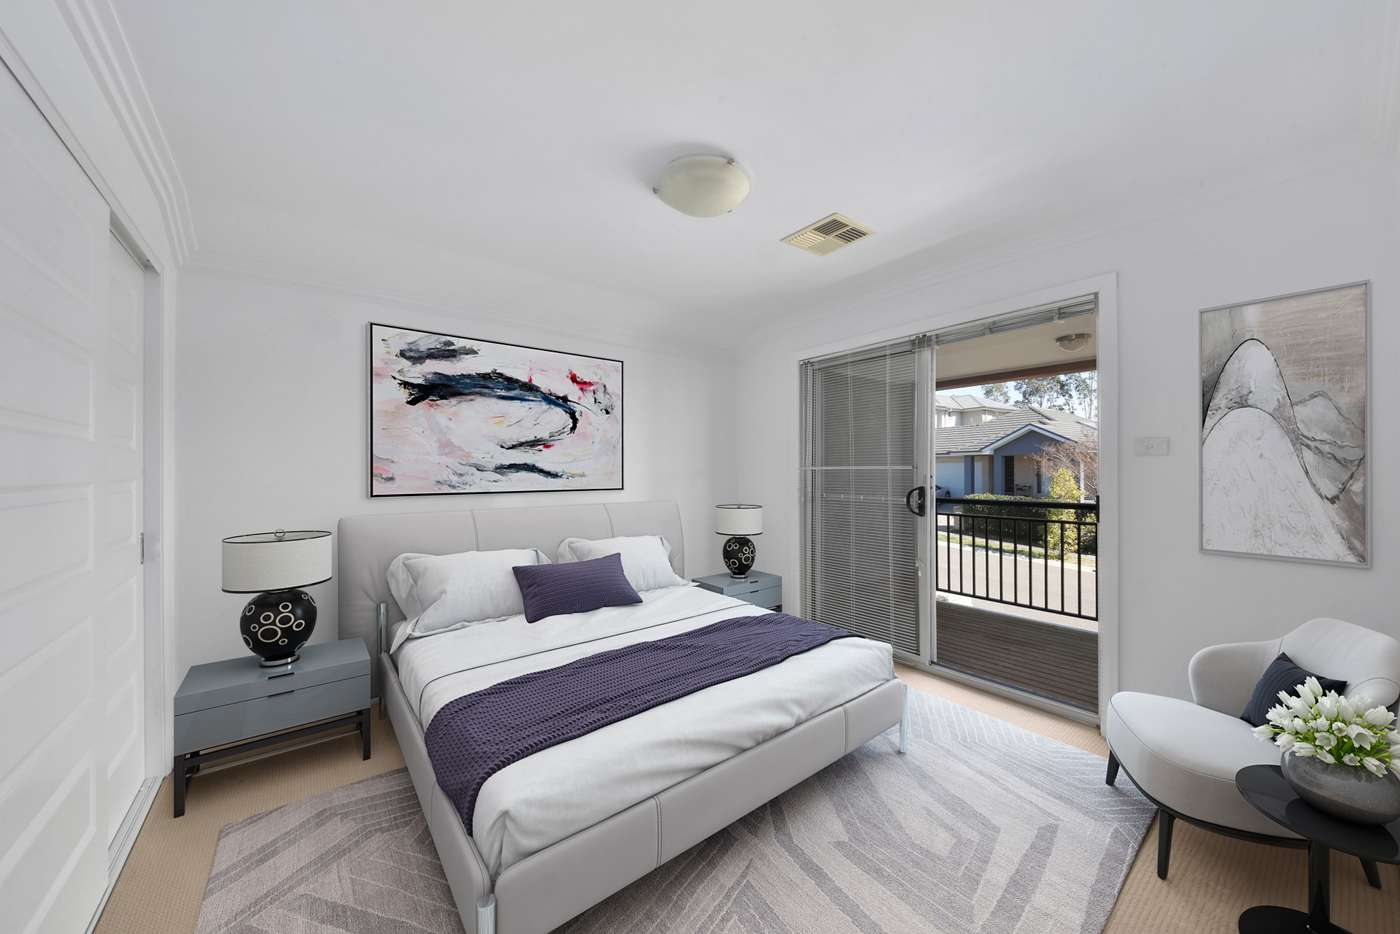 Fifth view of Homely house listing, 33 Santana Road, Campbelltown NSW 2560